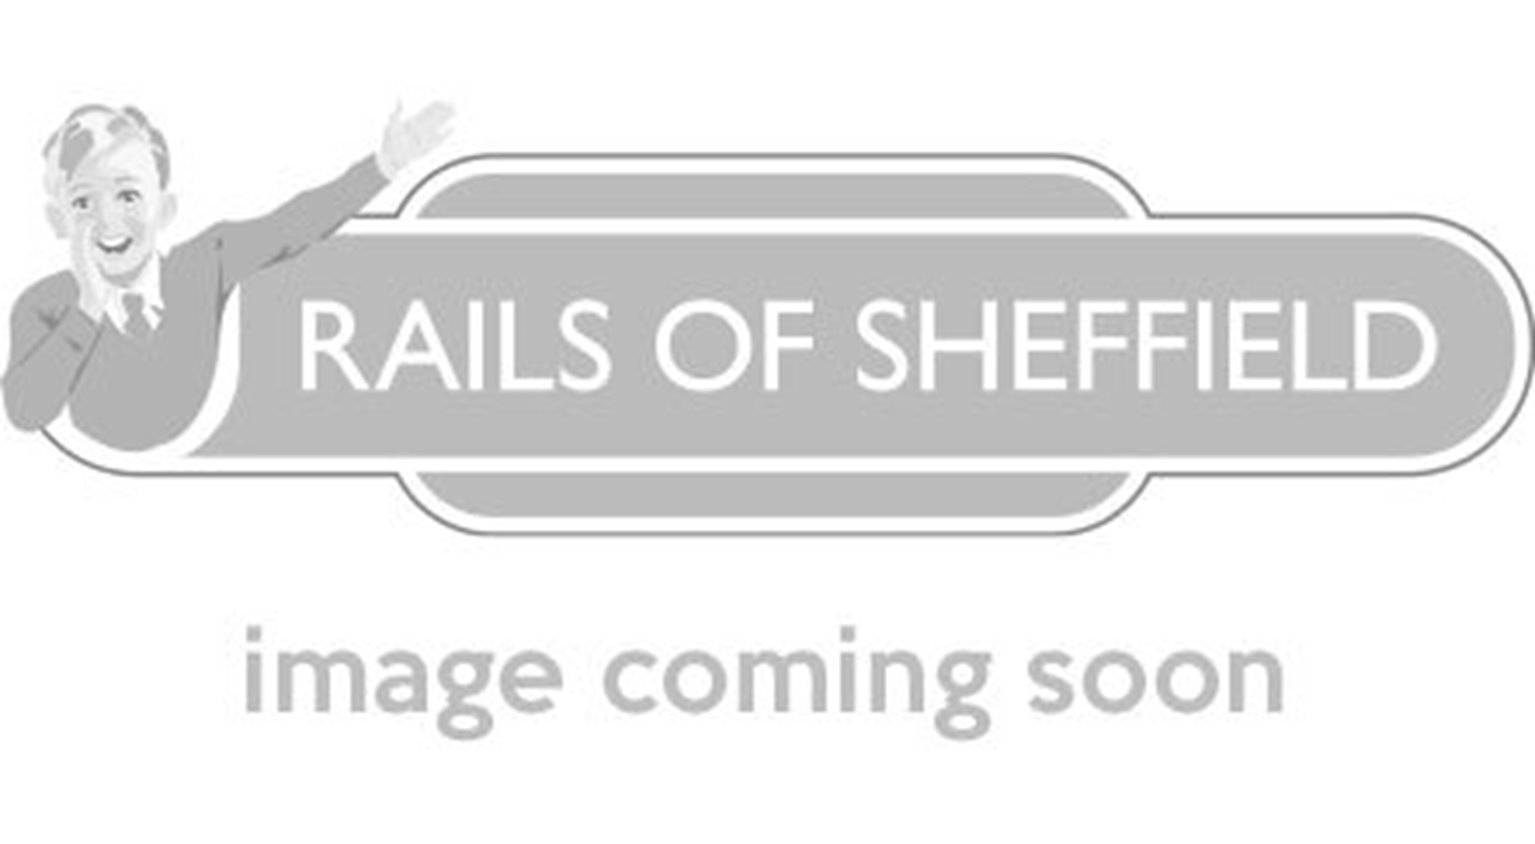 Kato 23-225 Wooden Engine Shed N Gauge